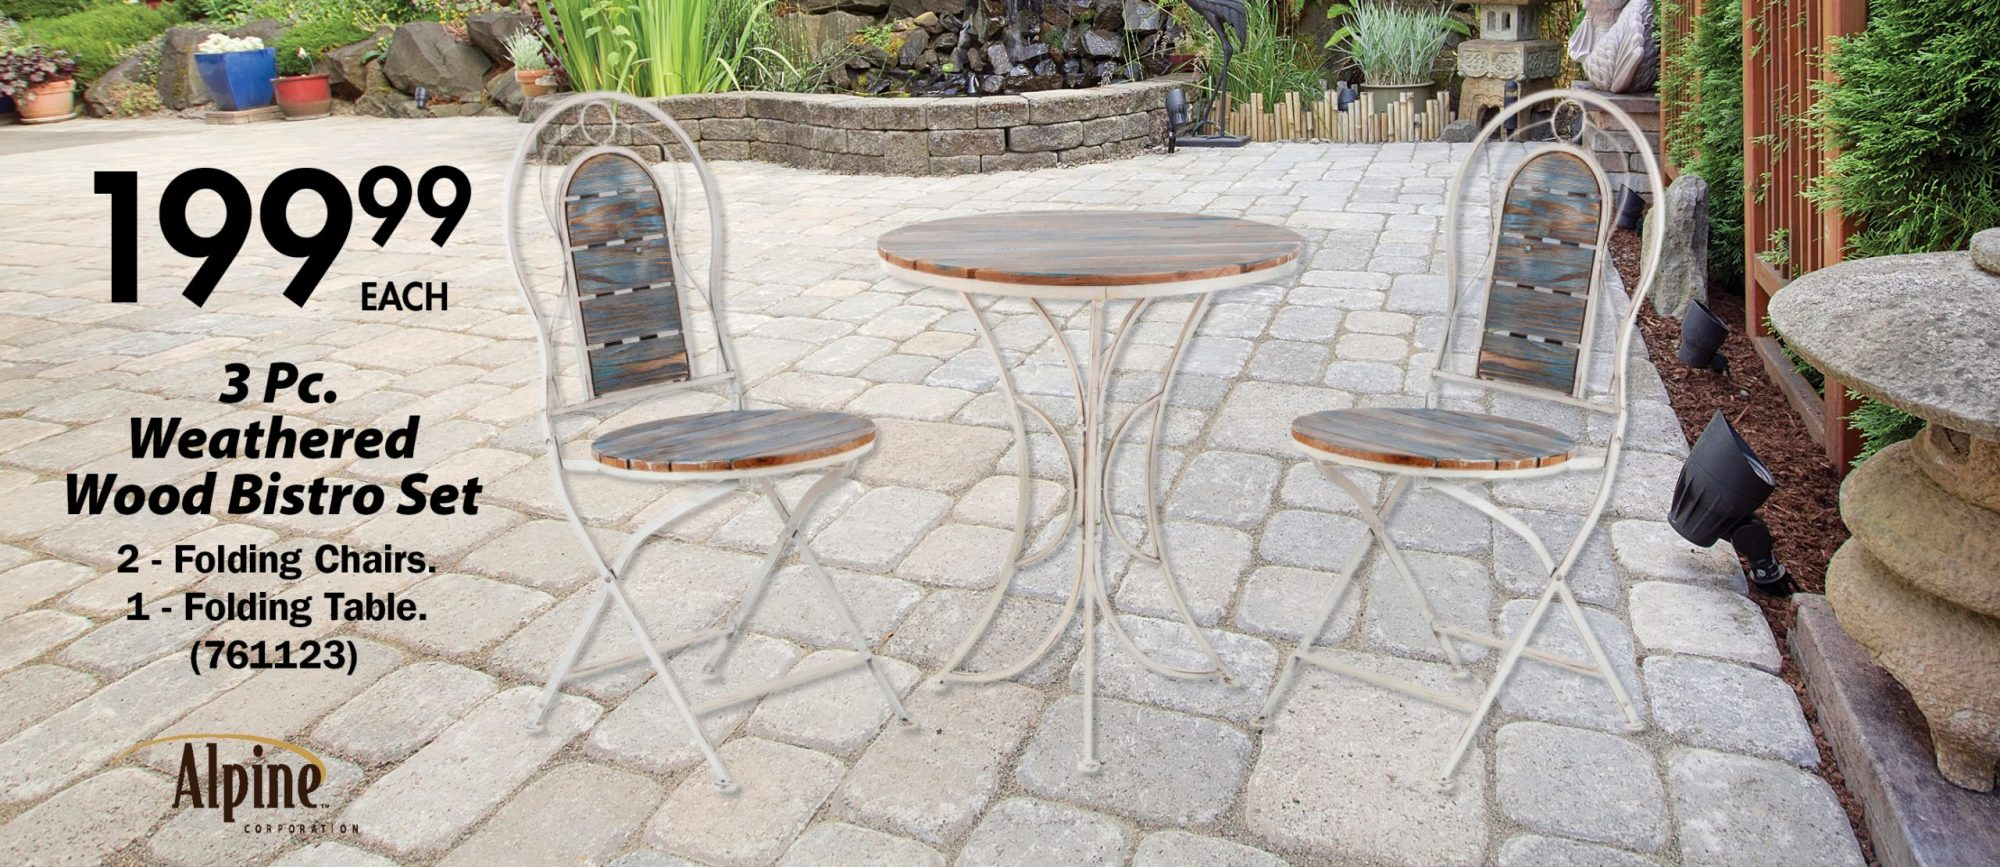 199.99   3 Pc.  Weathered  Wood Bistro Set.  2 - Folding Chairs. 1 - Folding Table.  (761123)